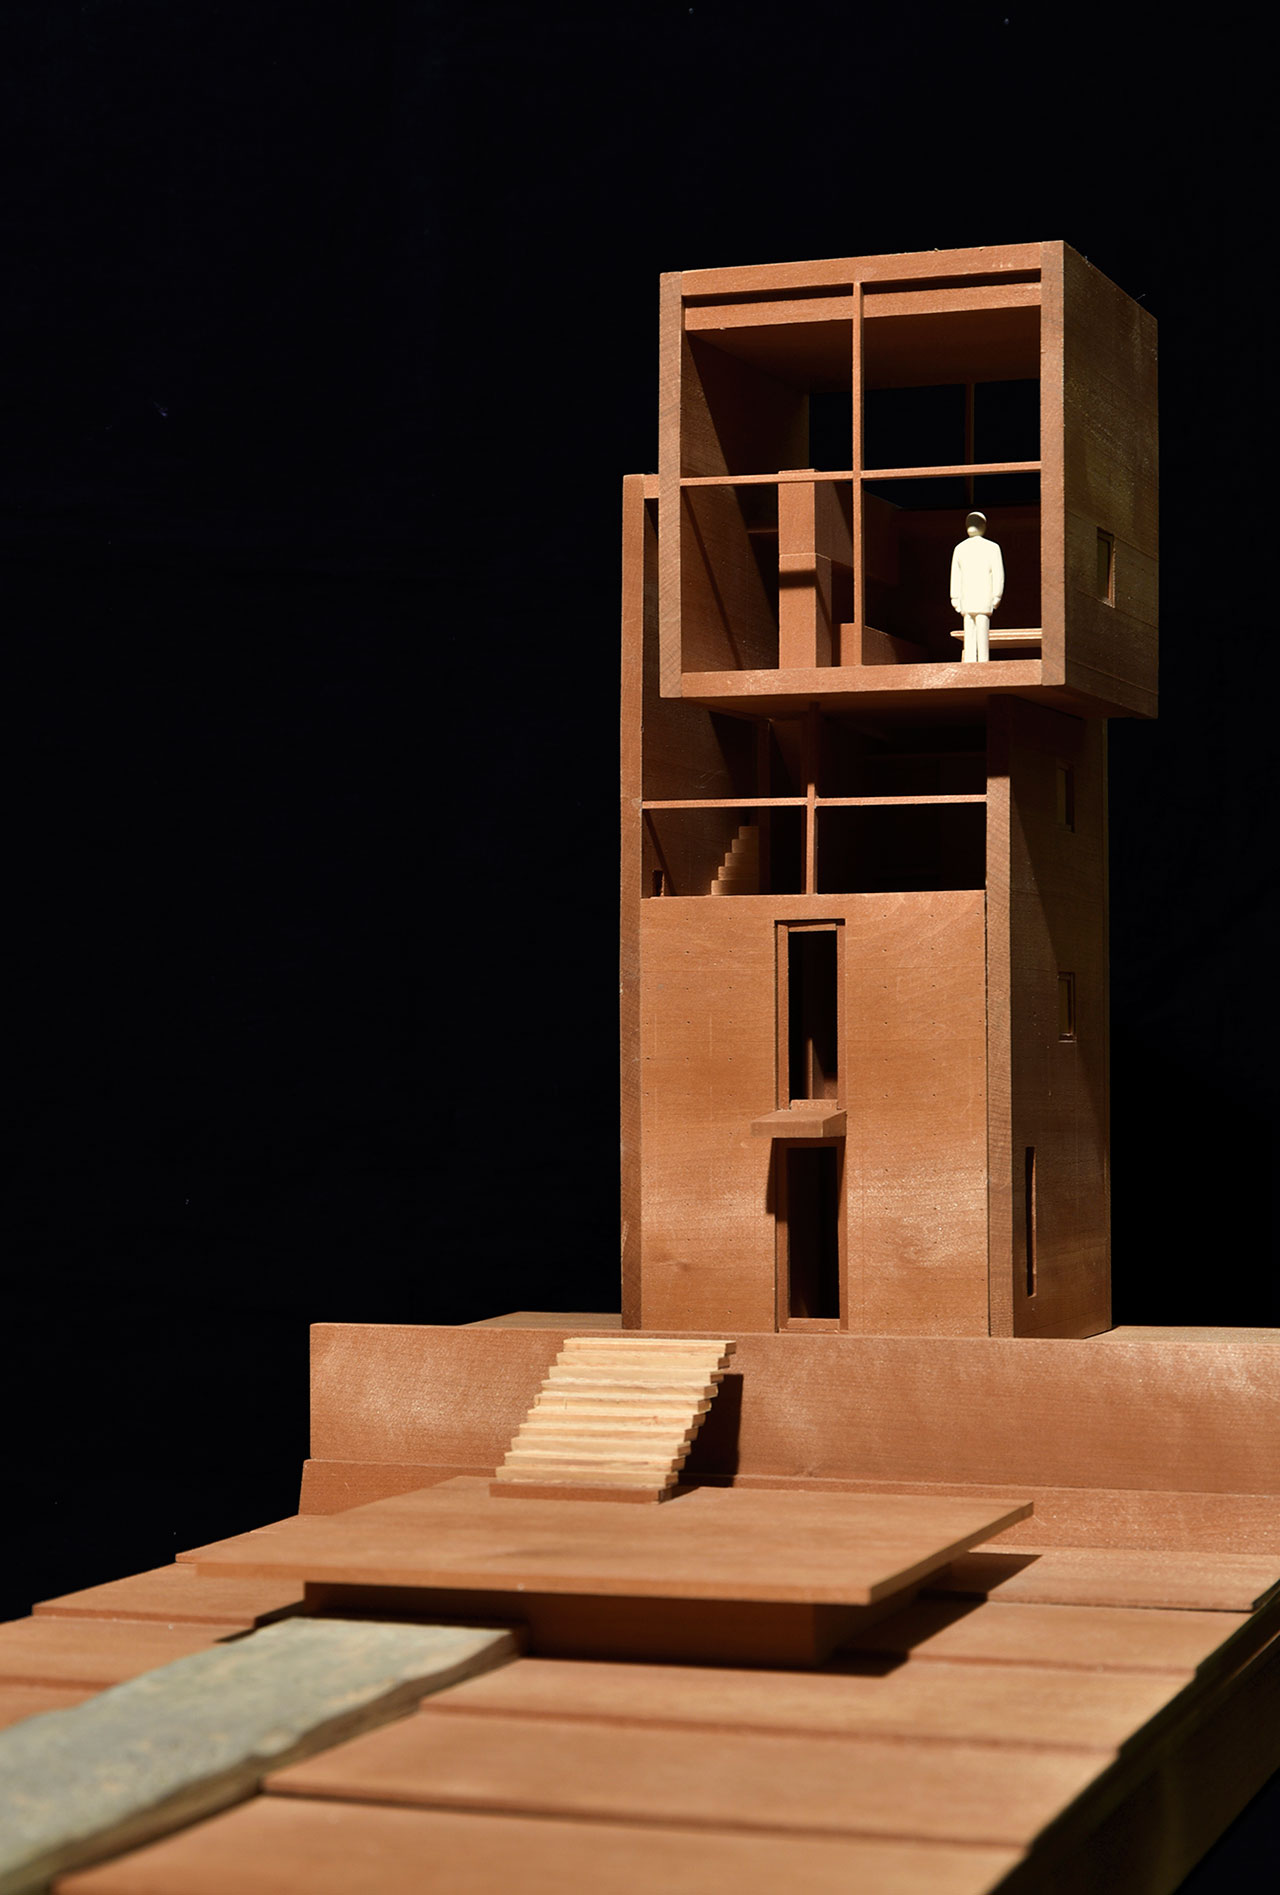 Model of 4 x 4 House (Kobe) © Tadao Ando.